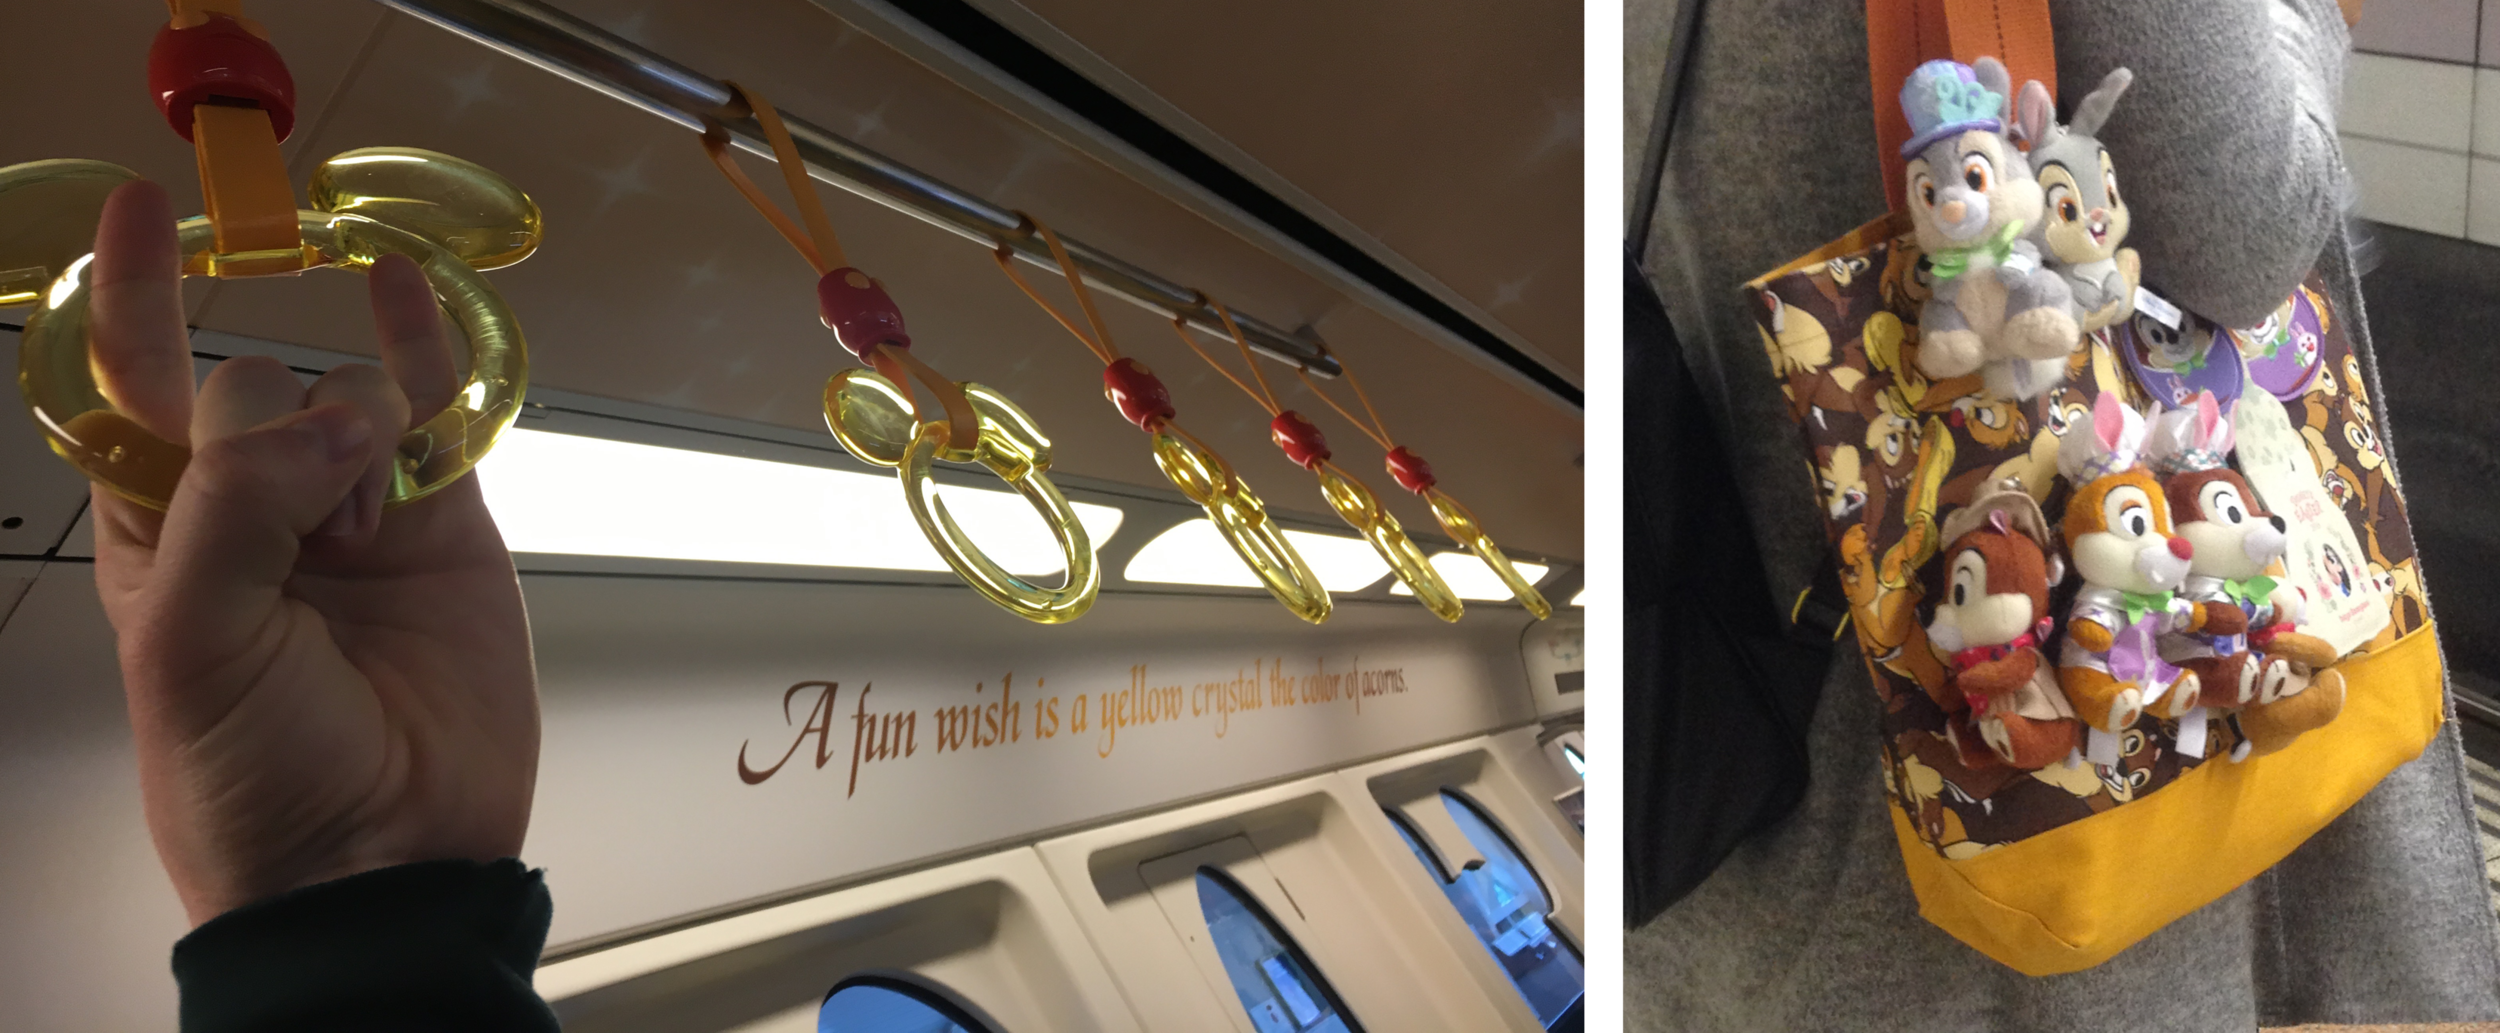 """(Left)""""A fun wish is a yellow crystal the color of acorns."""" (Right) A woman showing Disney spirit!"""